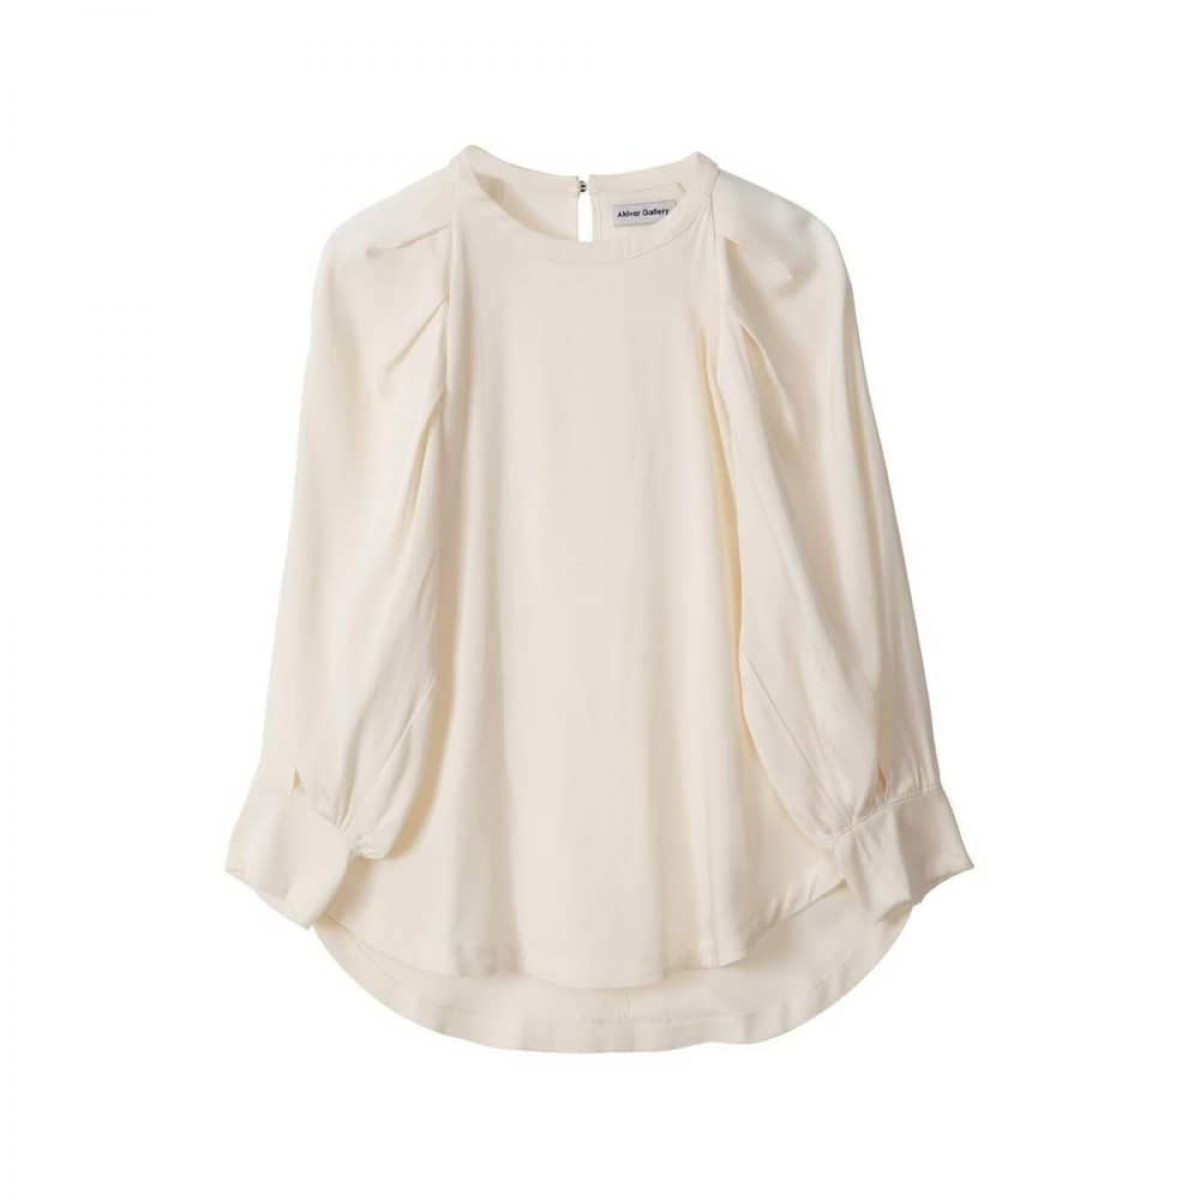 cheyenne bluse - off white - front